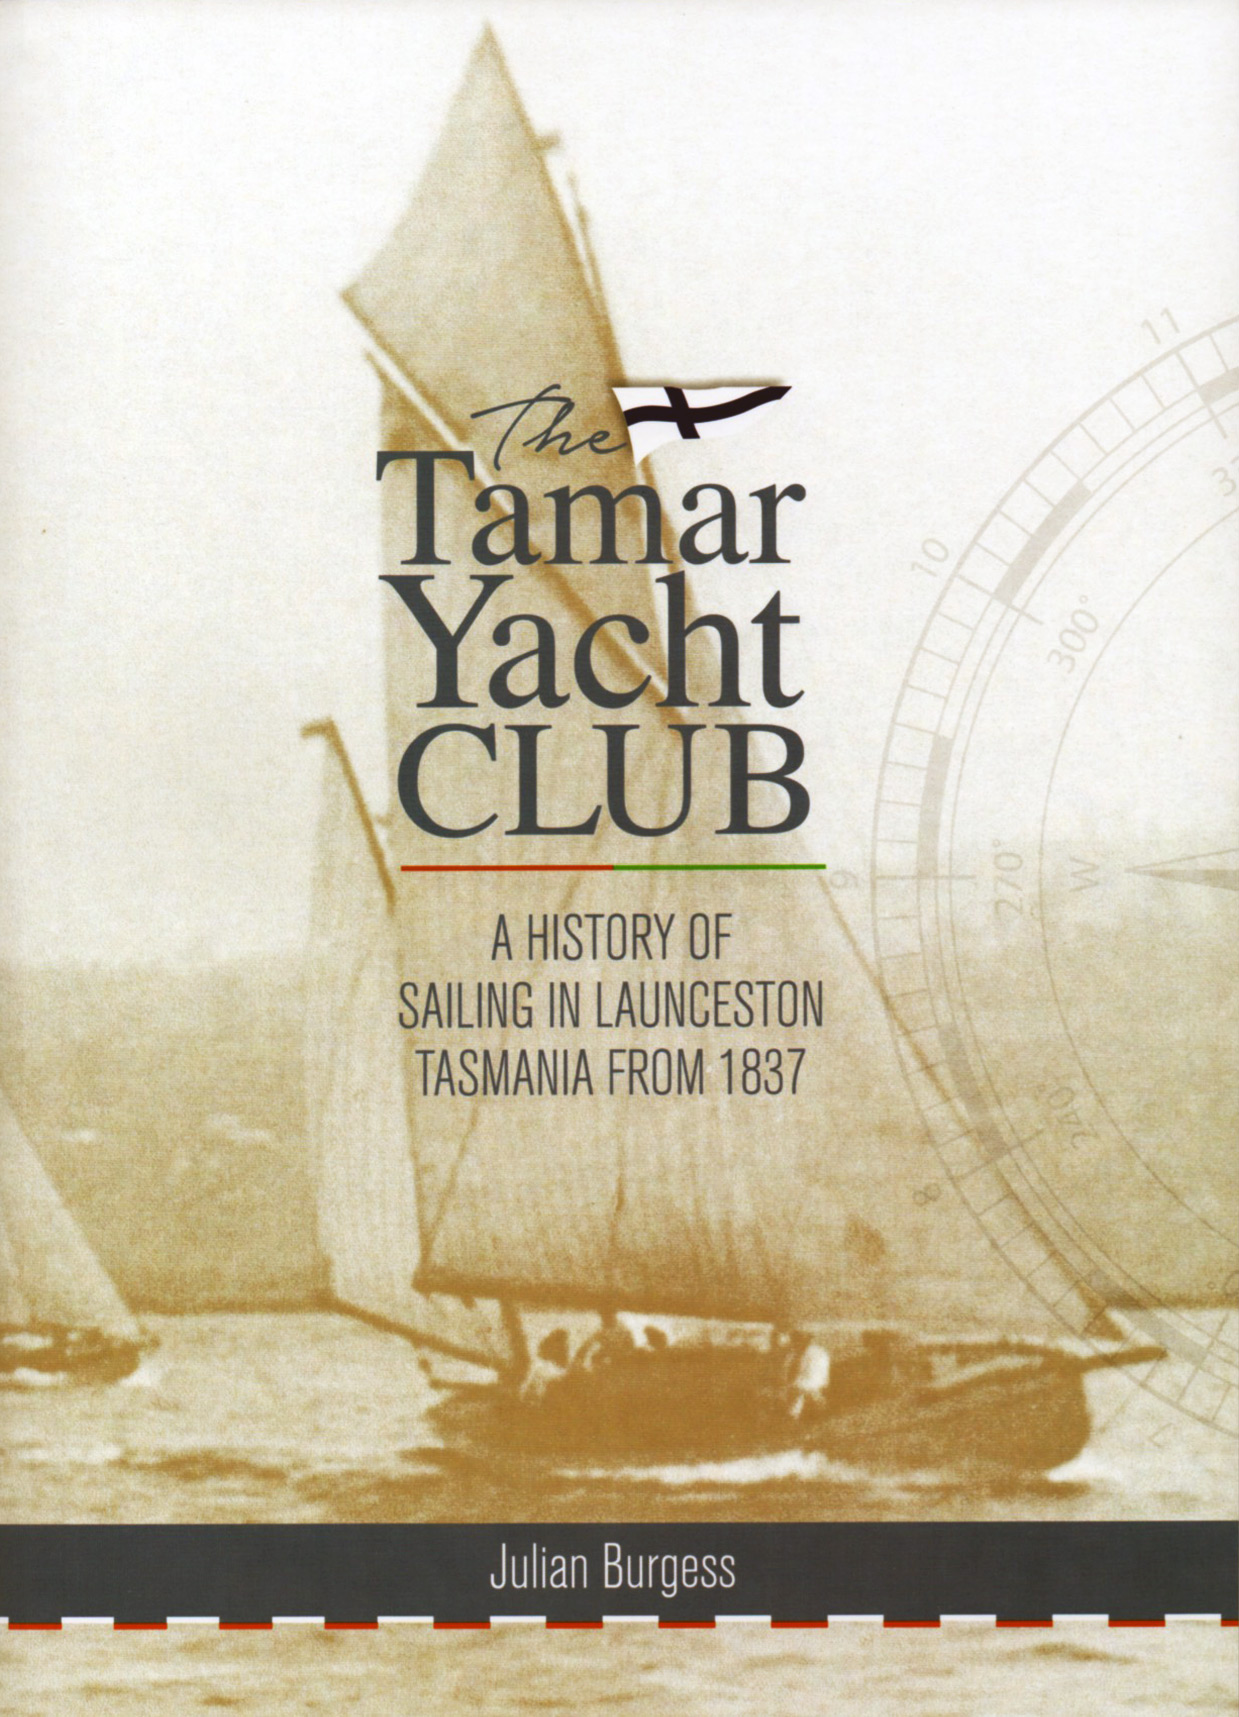 The Tamar Yacht Club - History of Sailing in Launceston from 1837